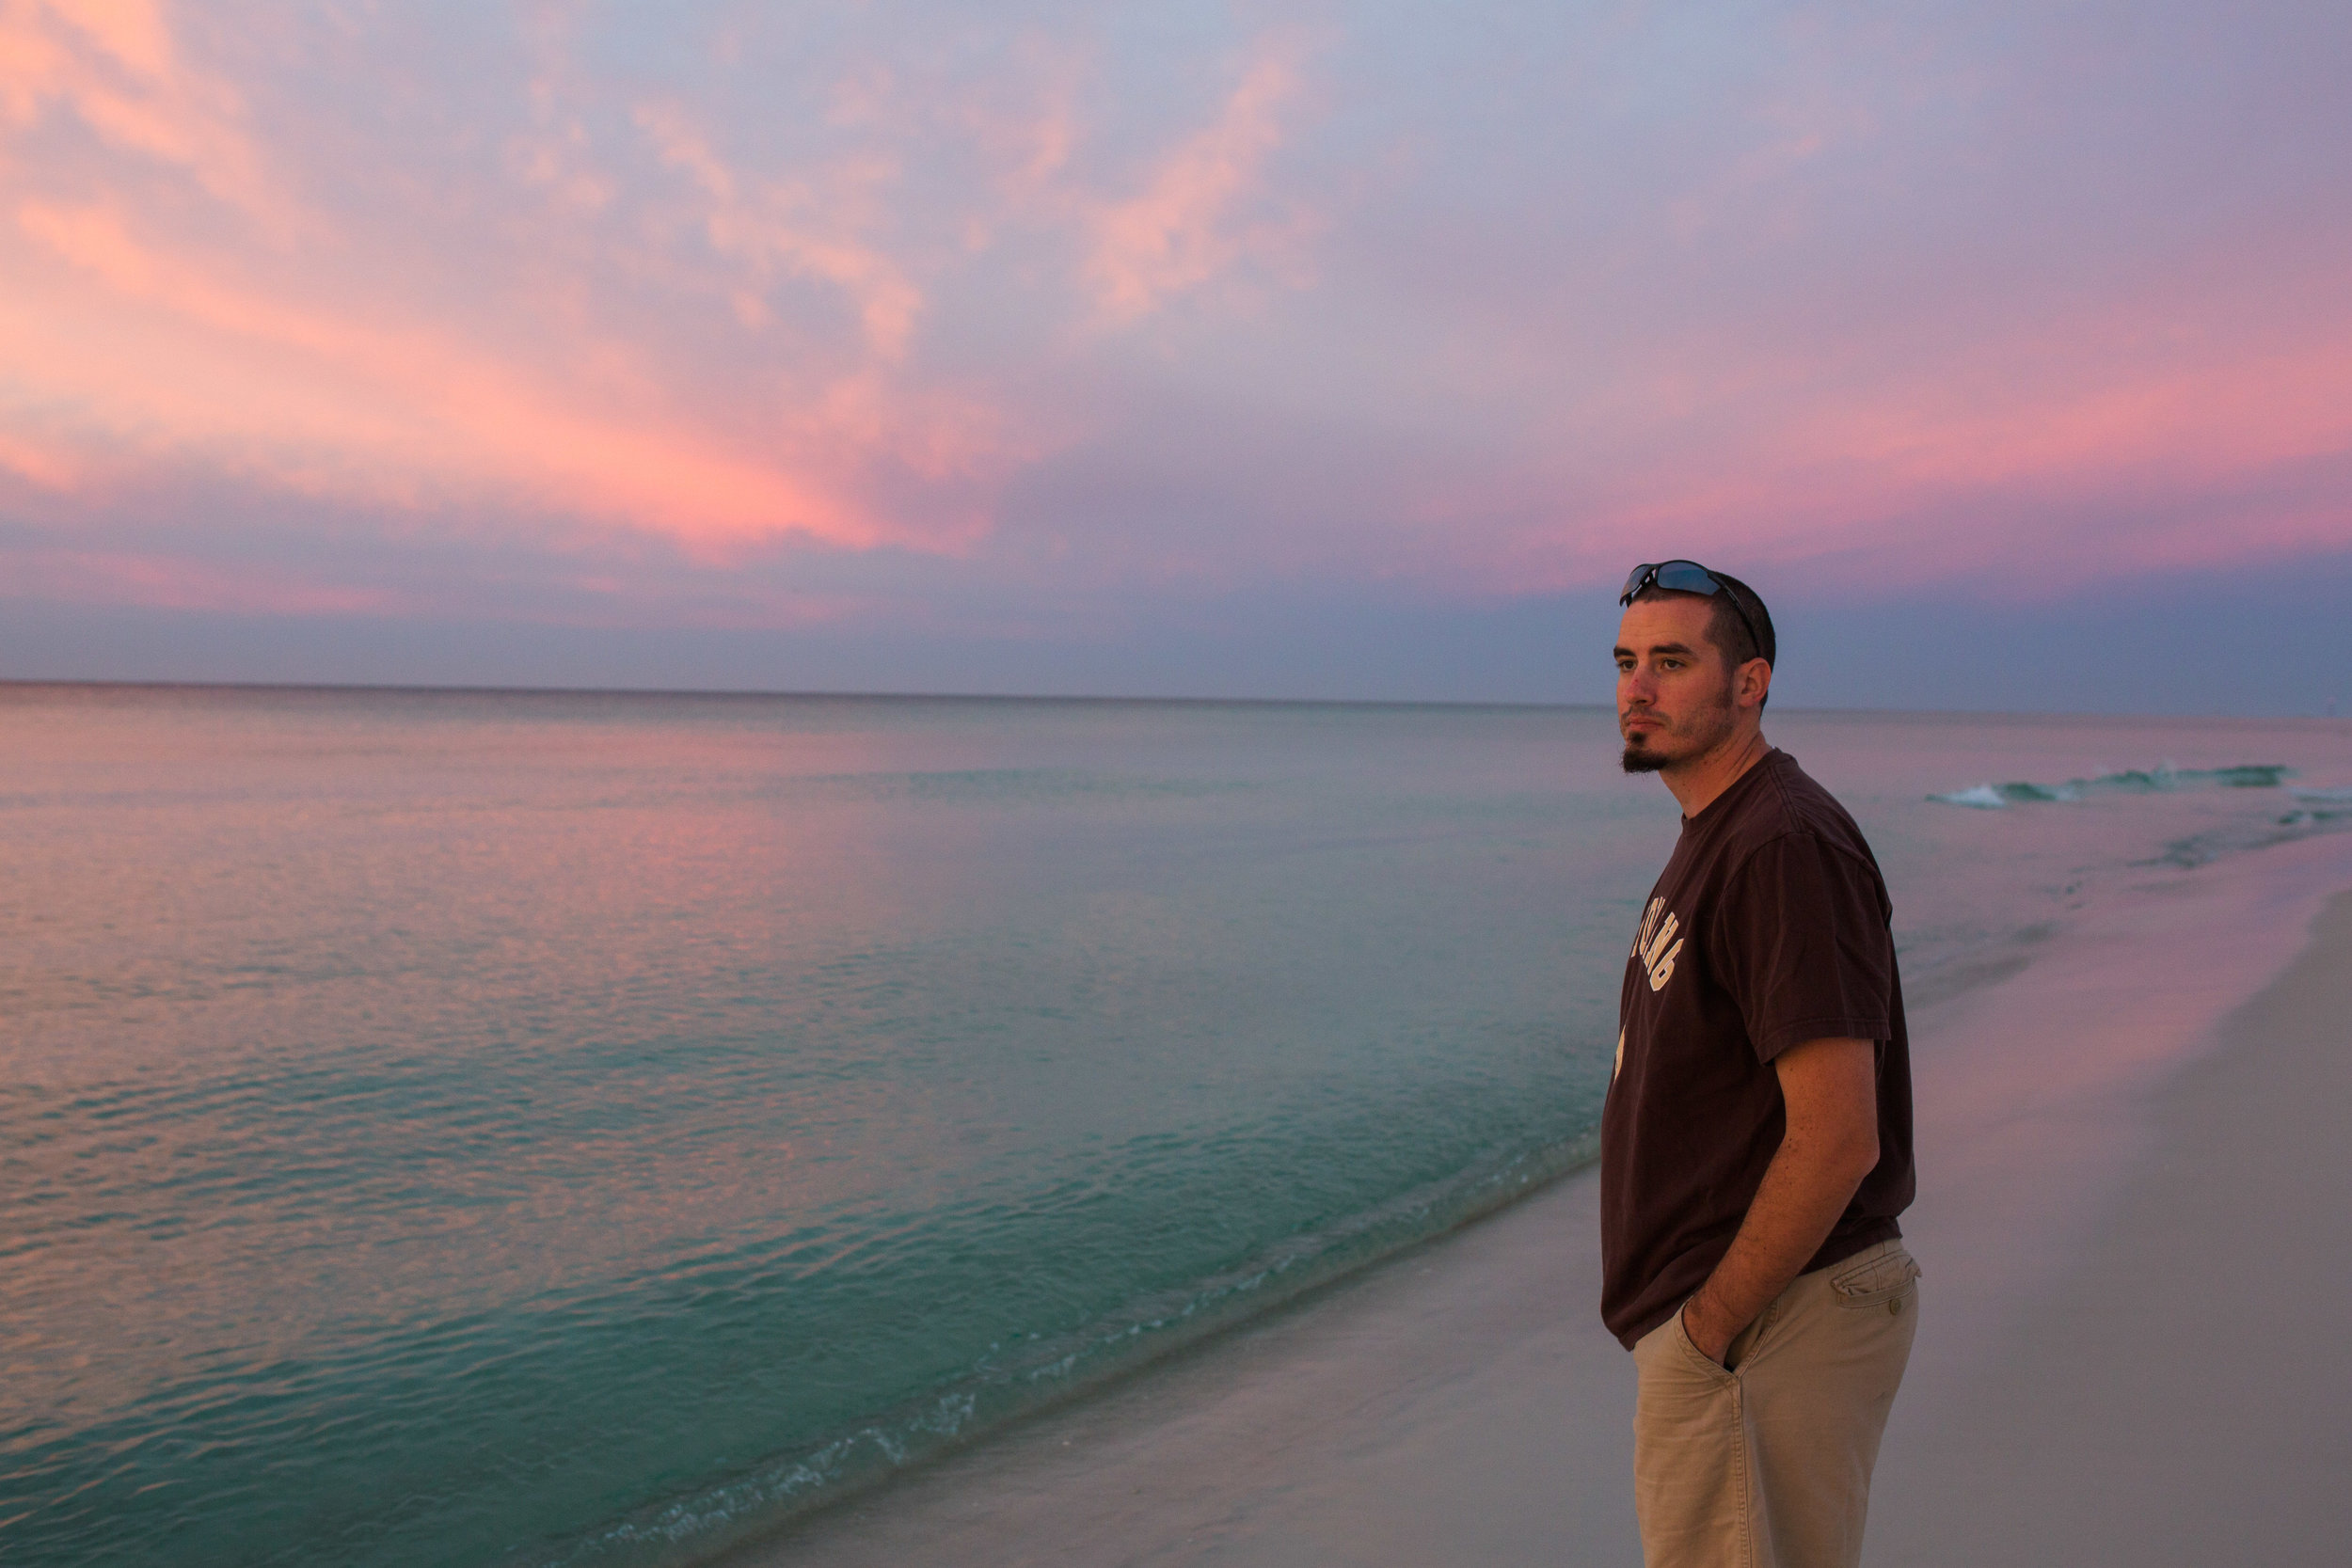 Mikal checking out a gorgeous sunrise at the beach